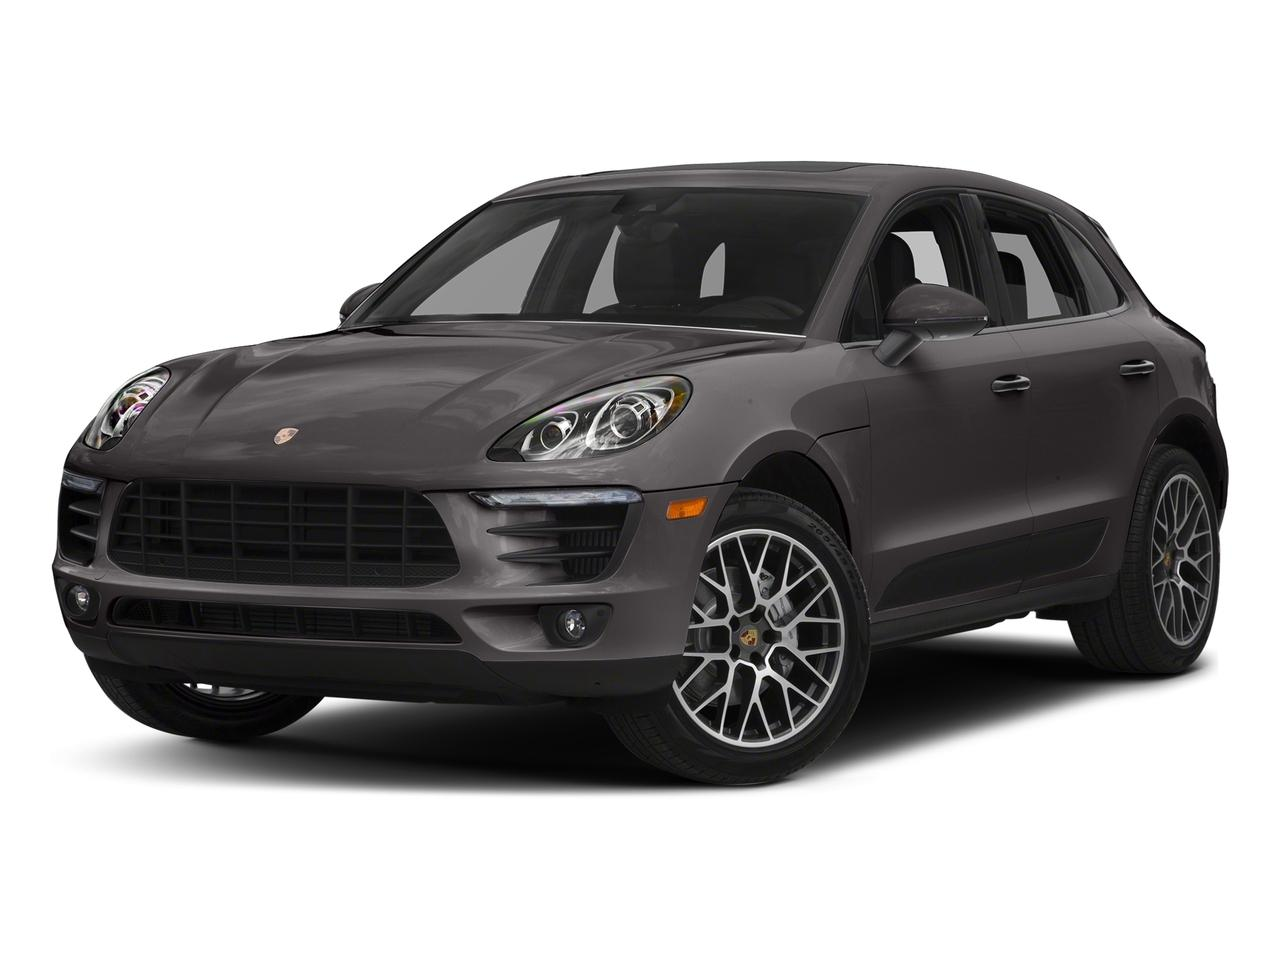 2018 Porsche Macan Vehicle Photo in Allentown, PA 18103